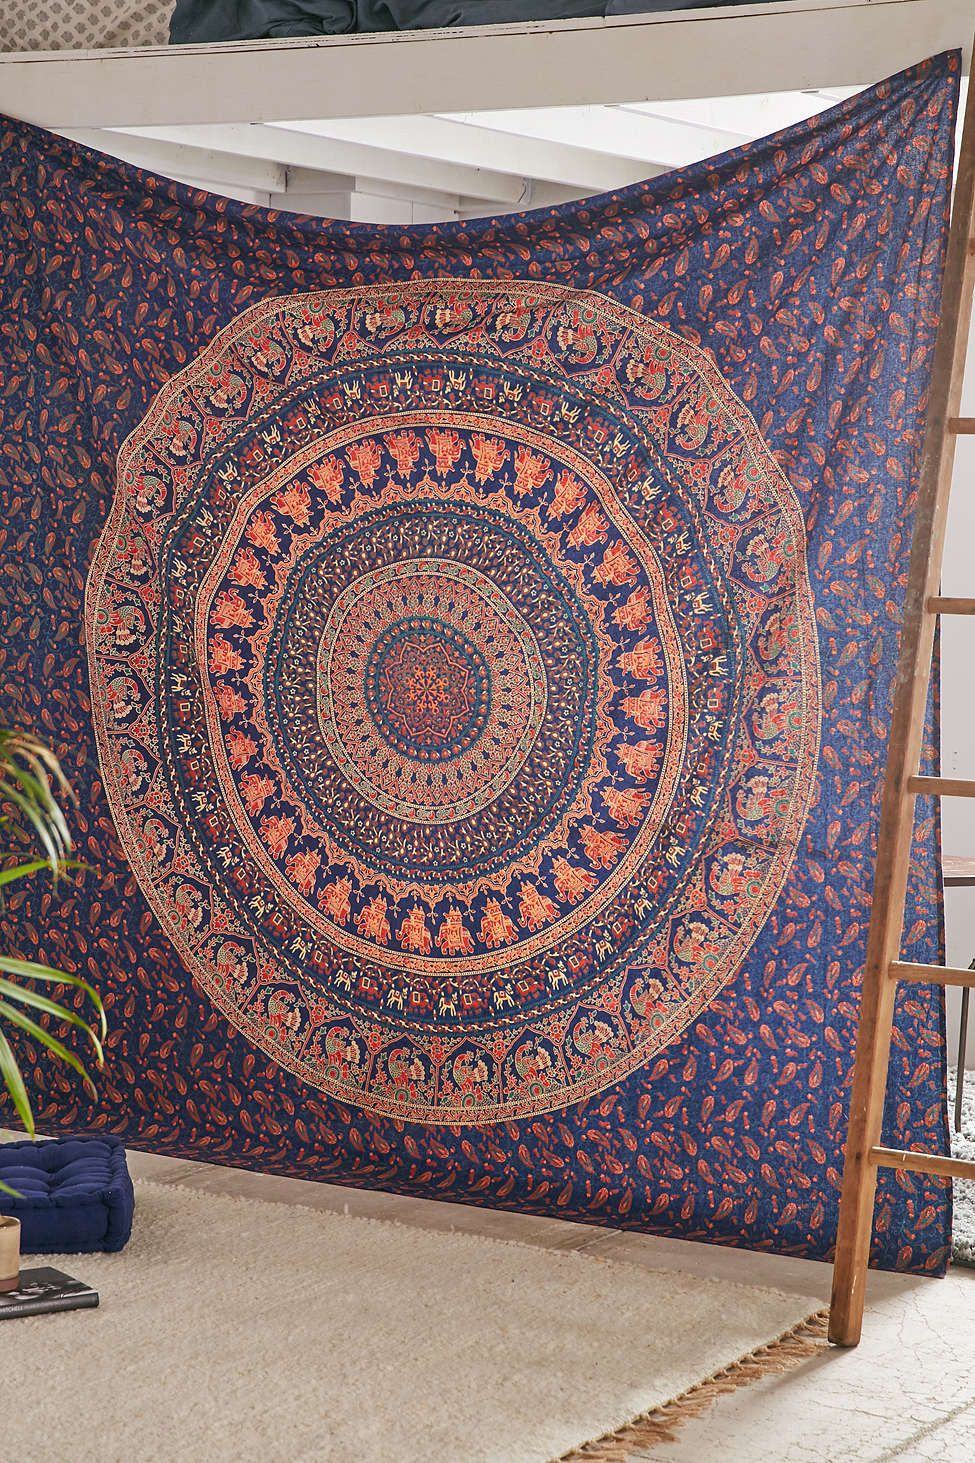 Urban outfitters bedroom tapestry - Dorm Room Magical Thinking Logan Medallion Tapestry On Sale At Urban Outfitters